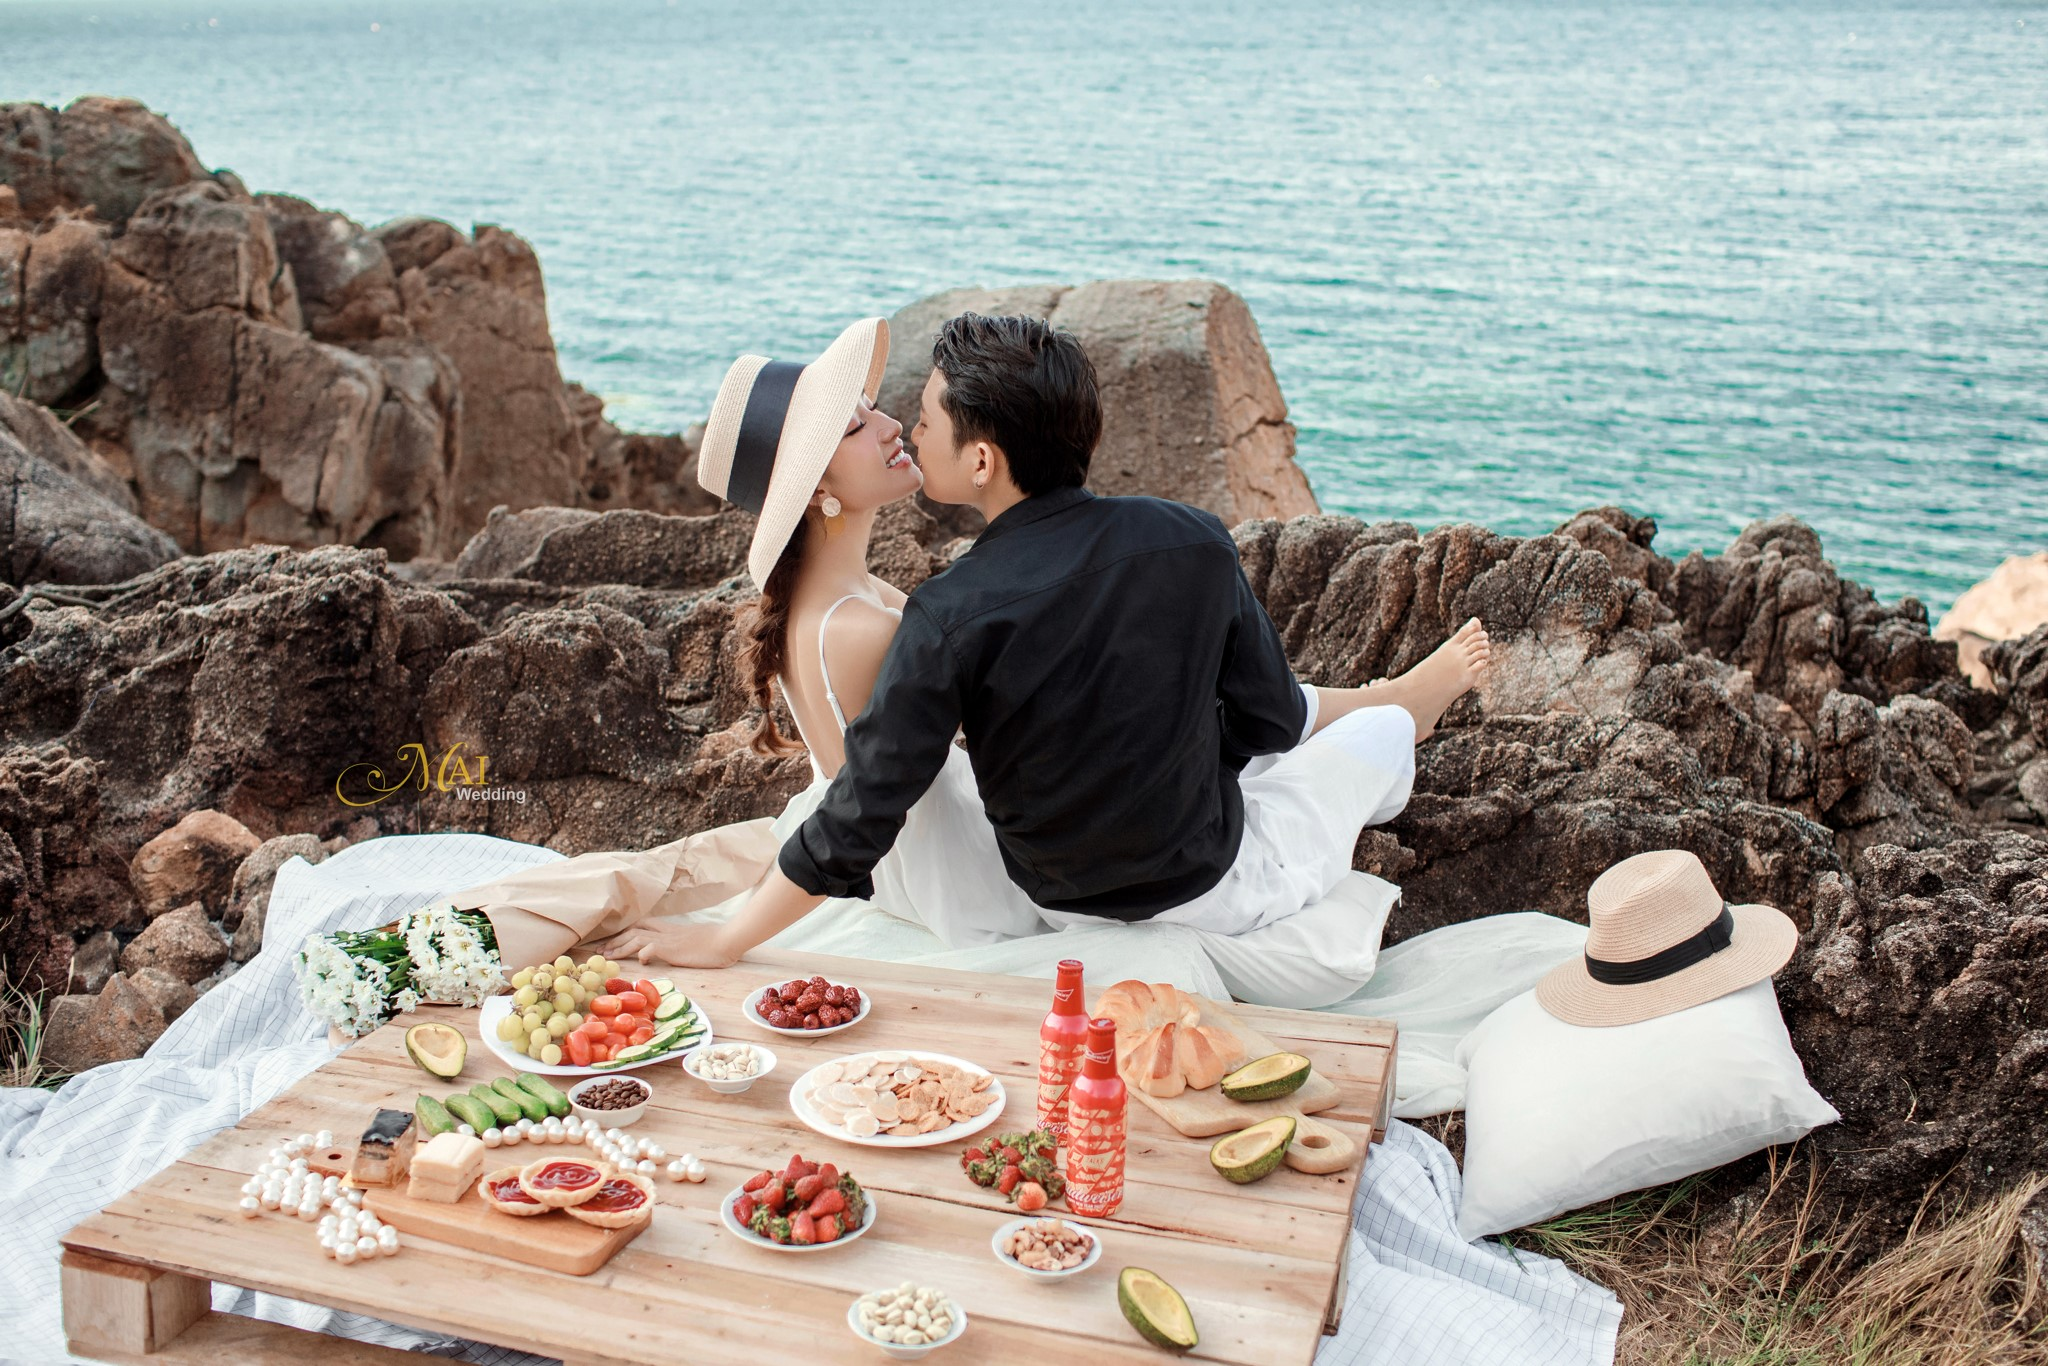 Concept Picnic By The Sea - 106106937 1422255234634010 7101439766112738244 o 1